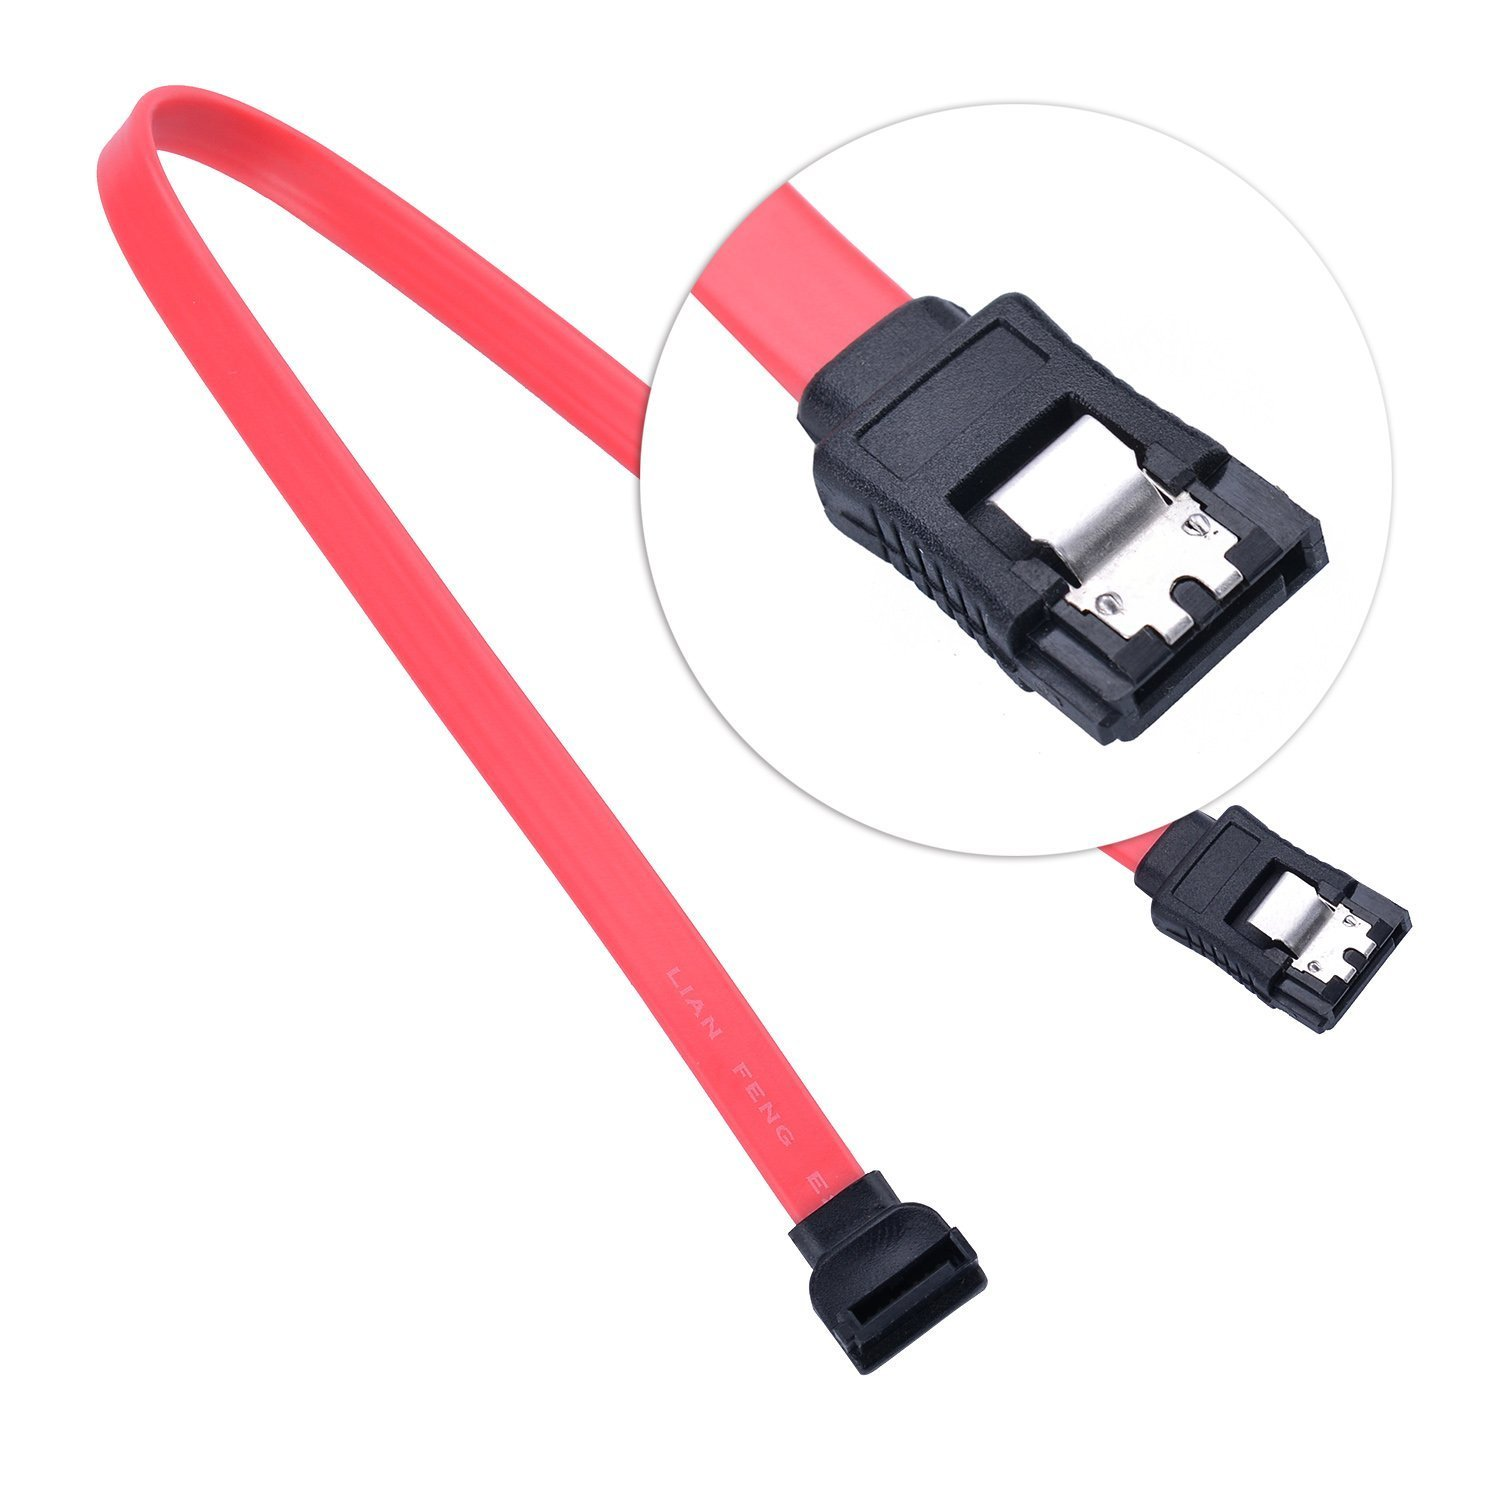 Generic SATA//PATA//IDE Drive to USB 2.0 Adapter Converter Cable for 2.5//3.5 Inch Hard Drive//5 inch Optical Drive with External AC Power Adapter